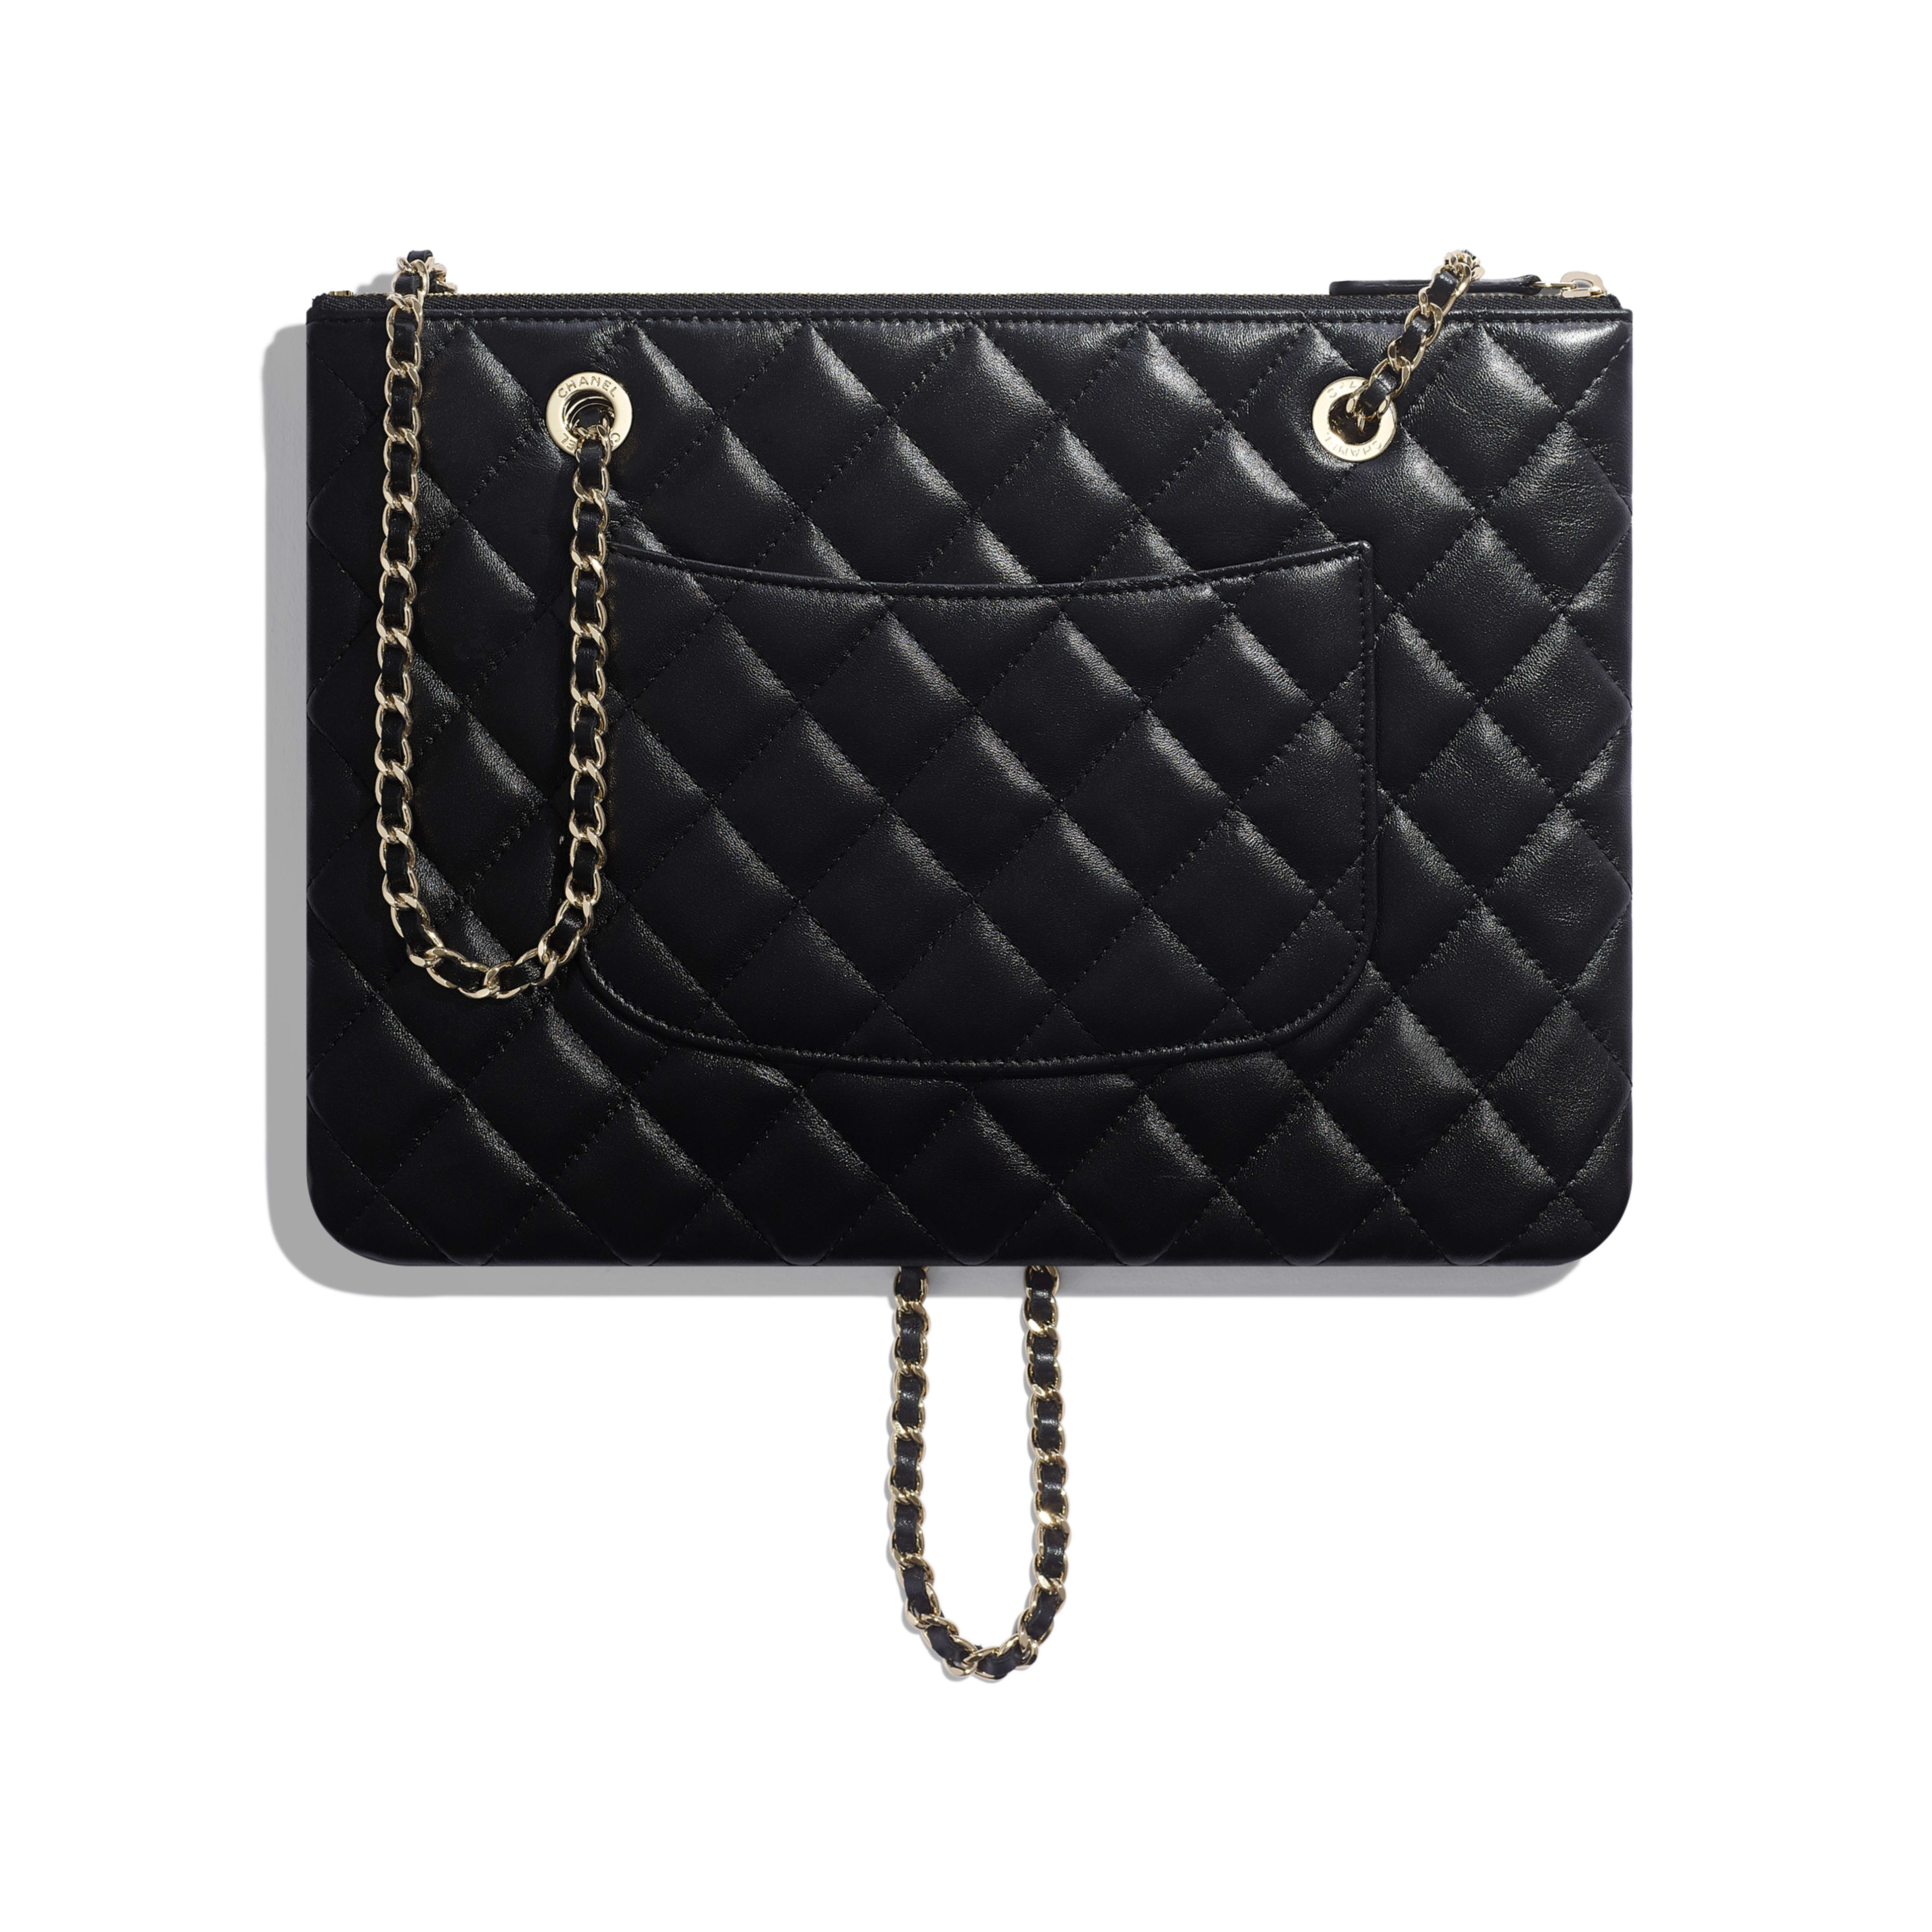 Clutch With Chain - Black - shiny lambskin & gold-tone metal - Alternative view - see full sized version